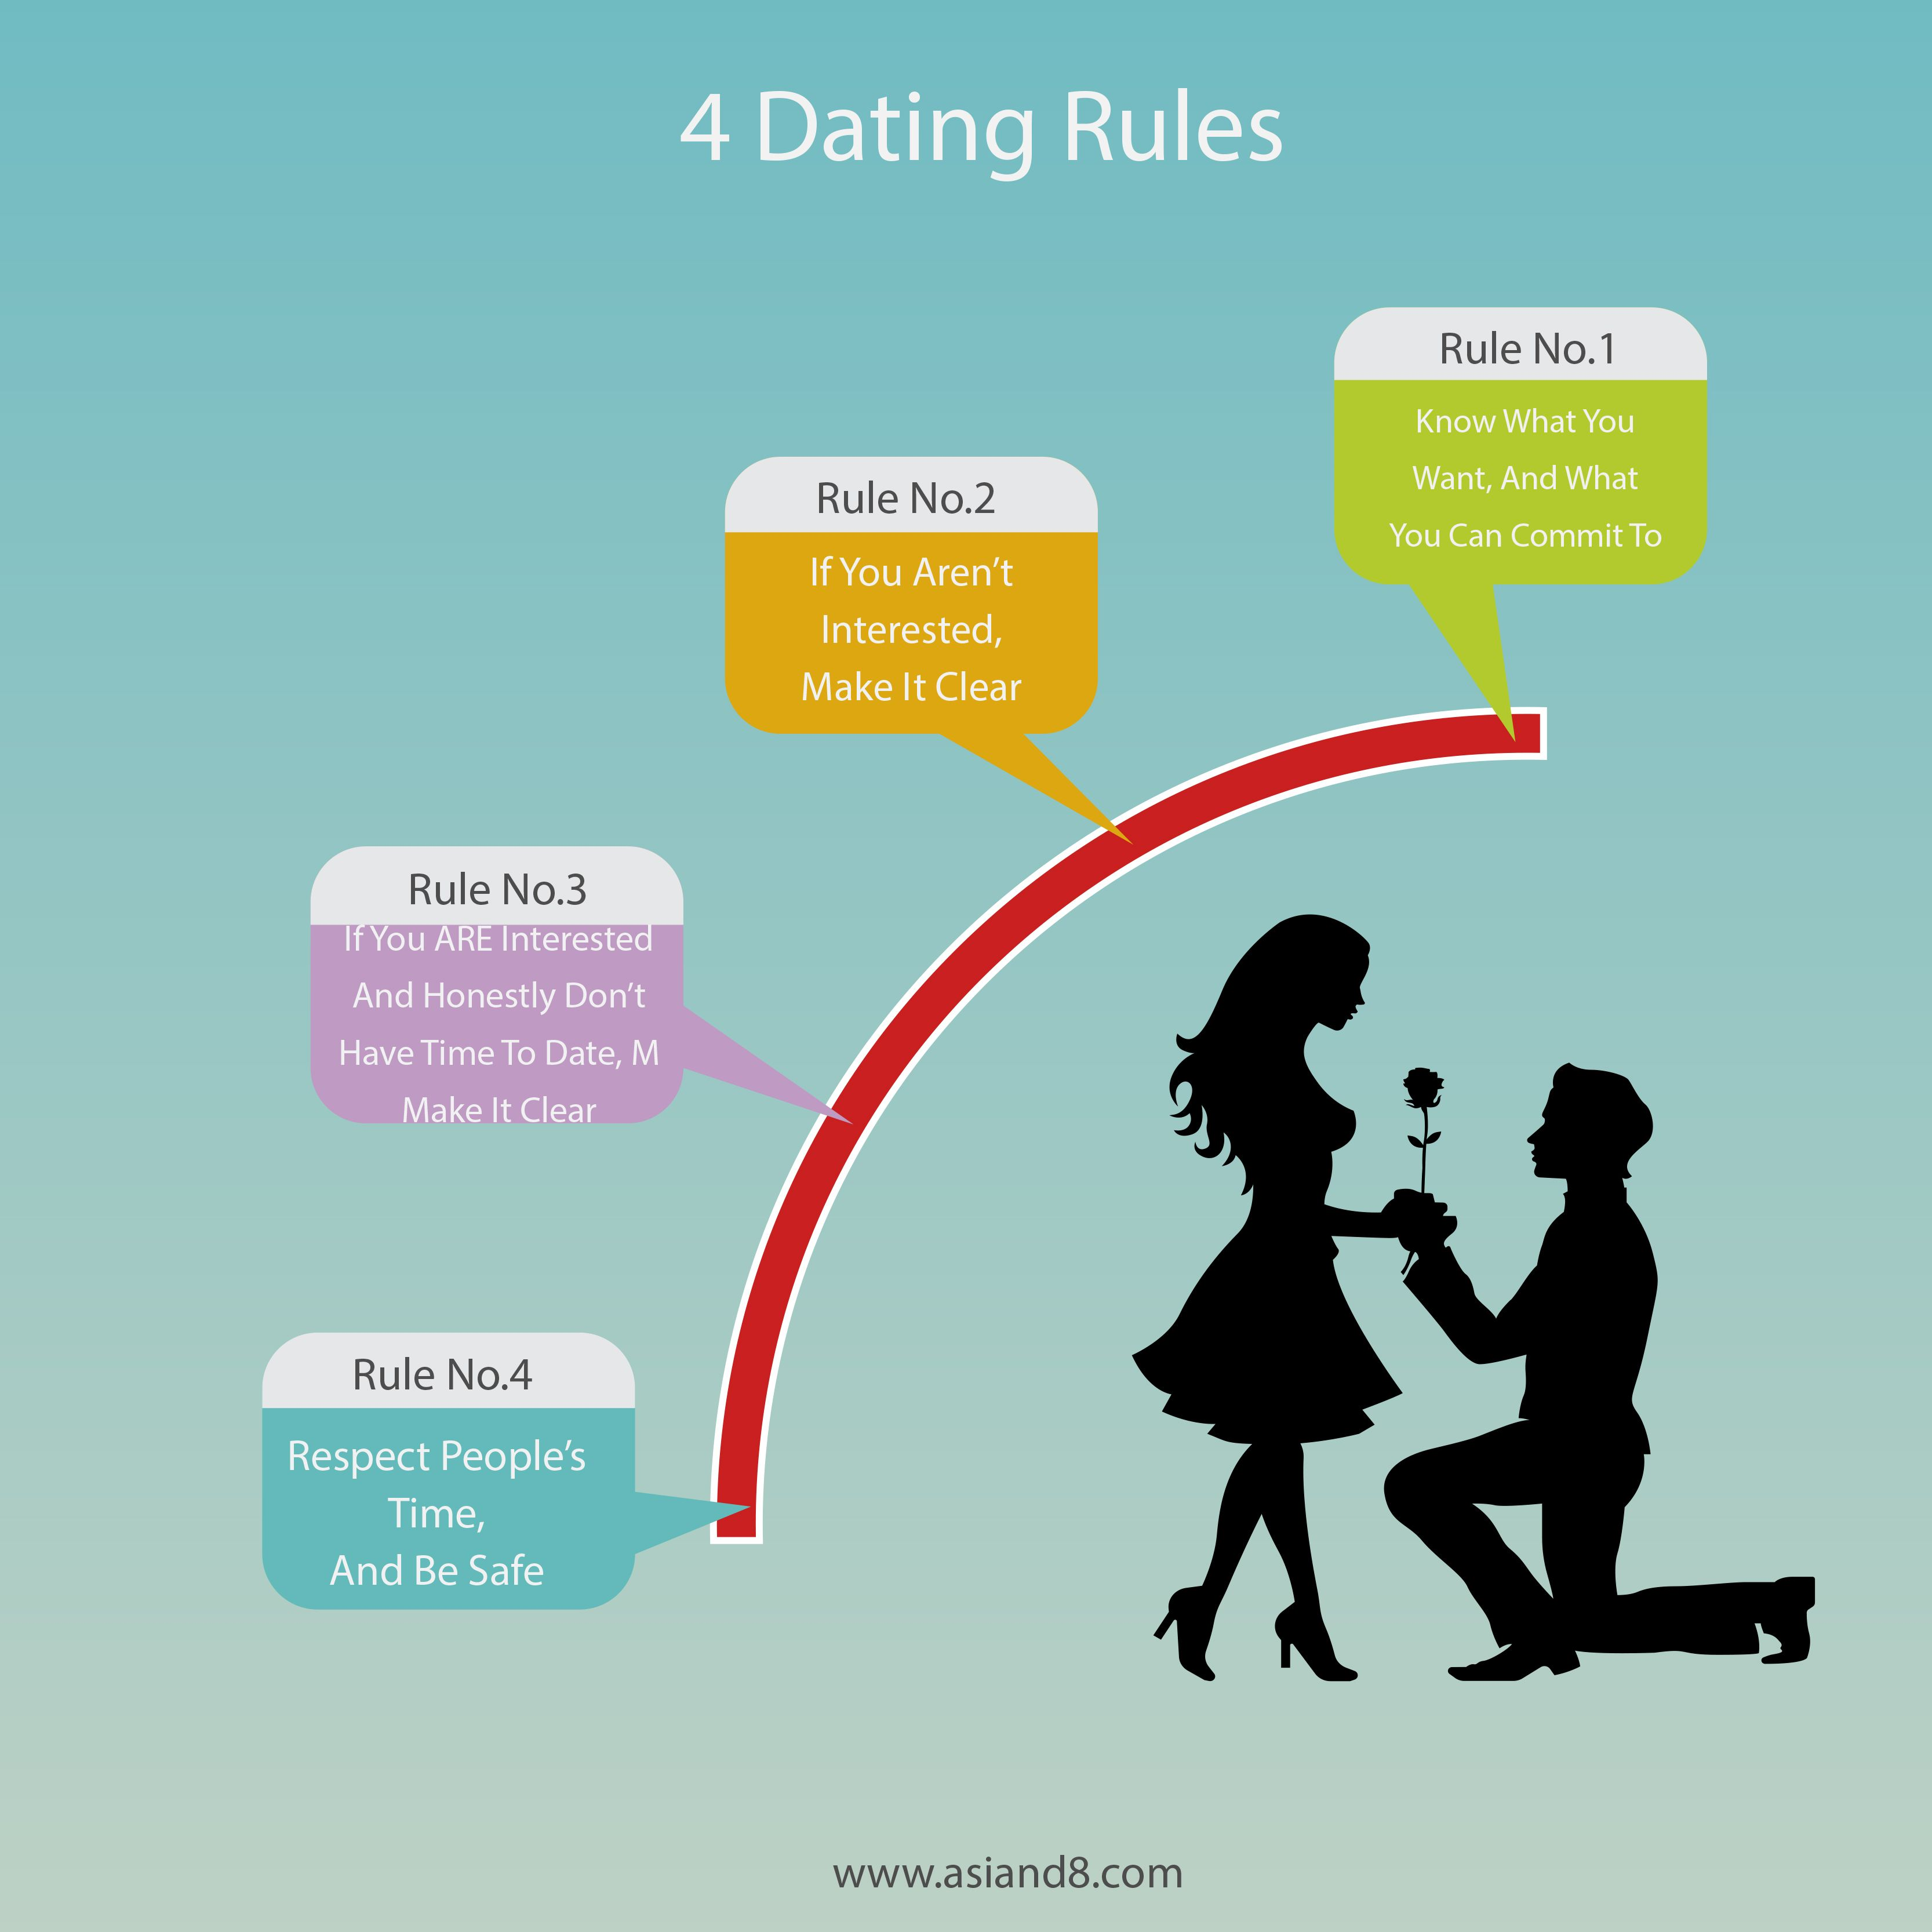 What are four dating rules